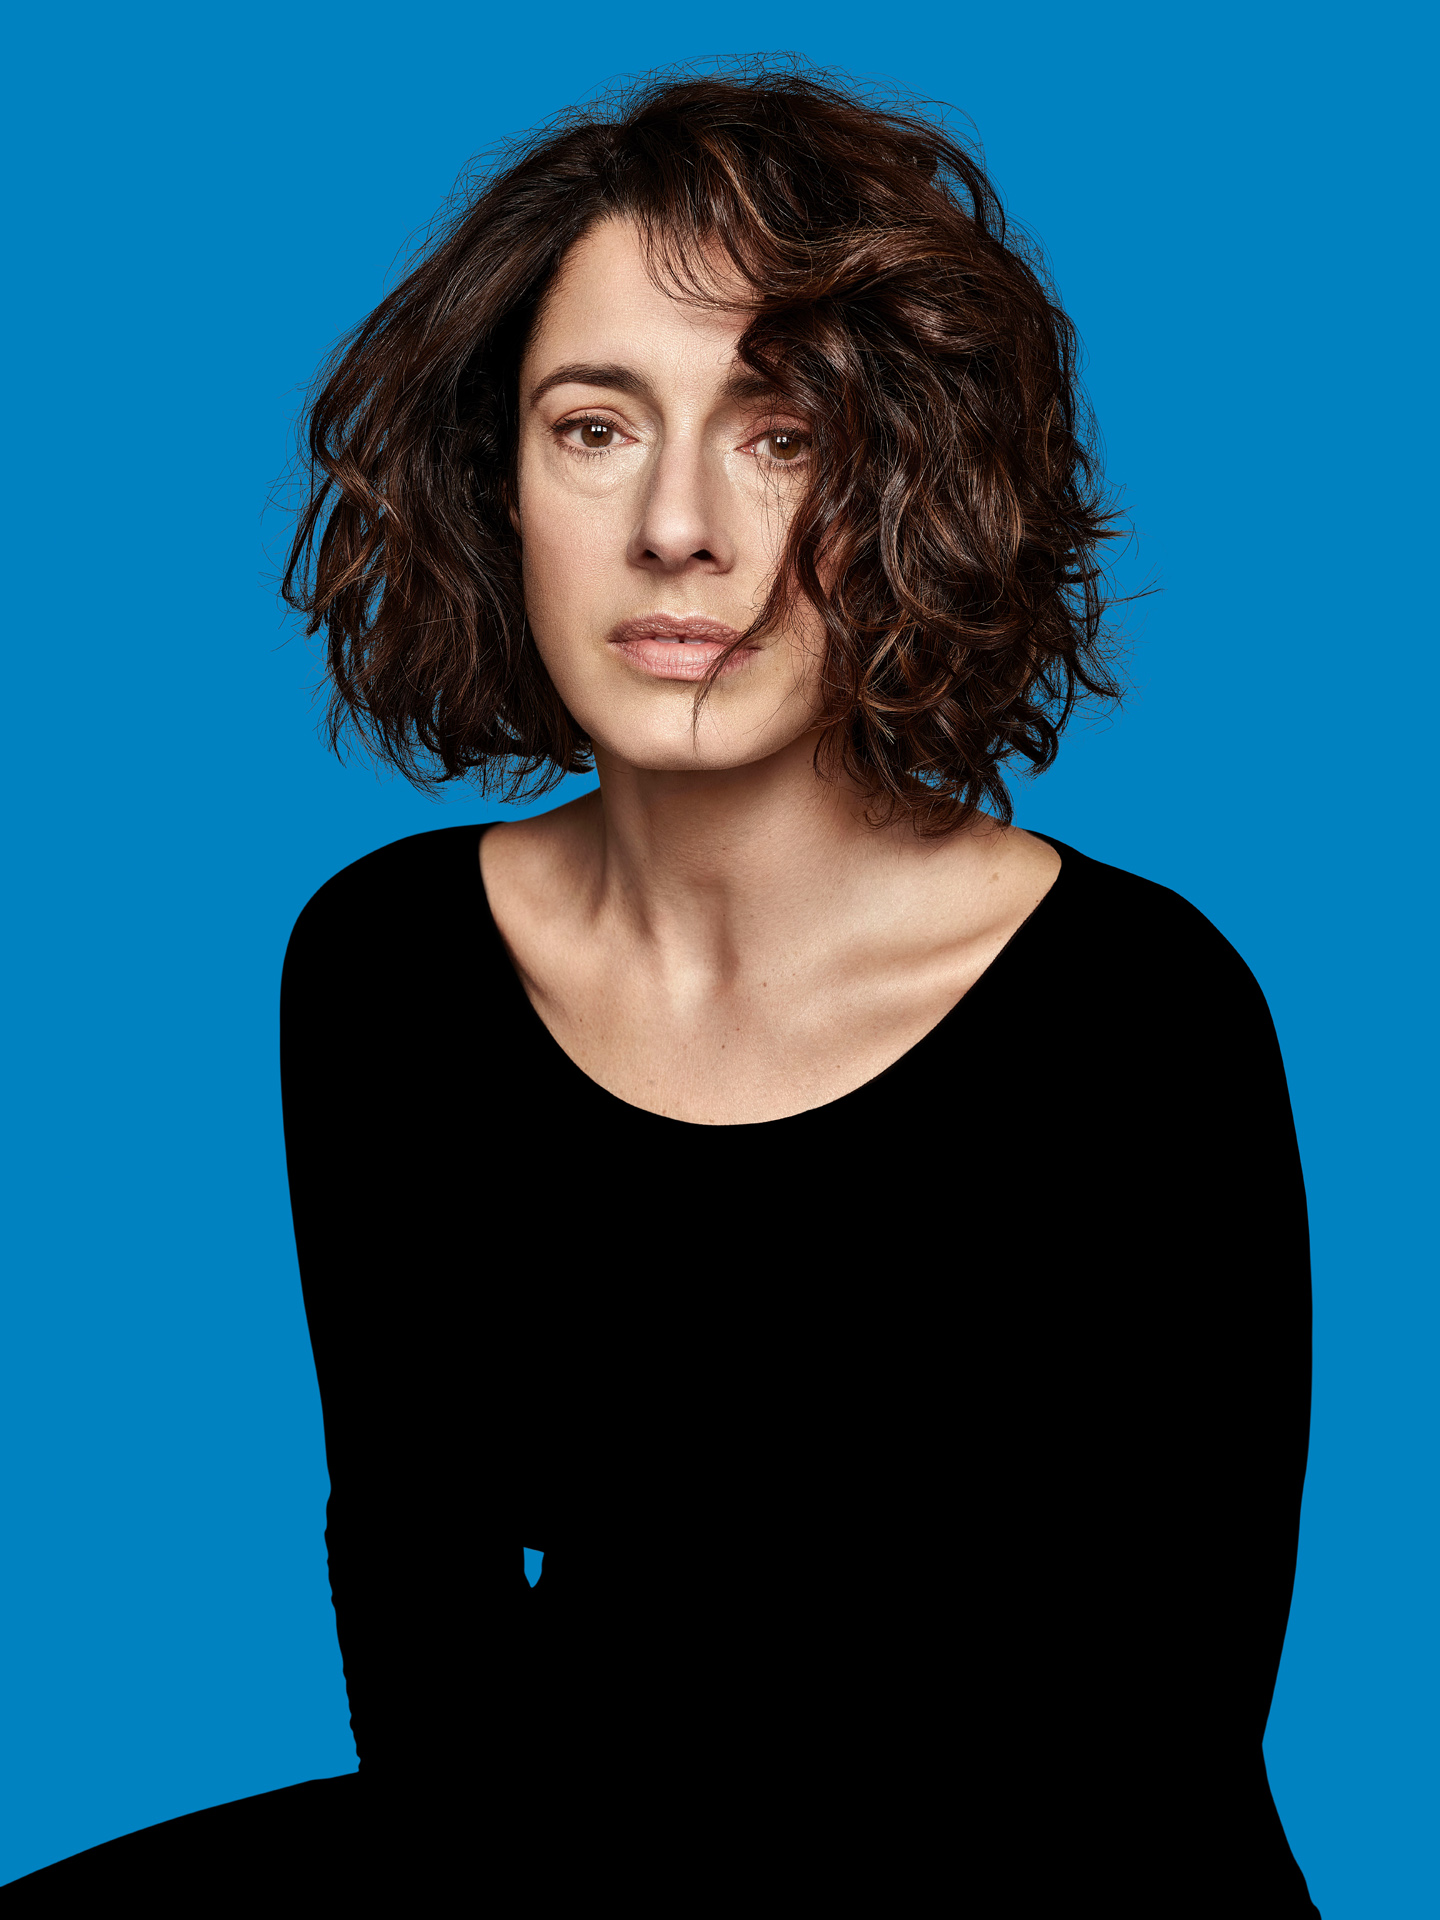 actress Marie-Helene Thibault on blue background by Maxyme G Delisle for Duceppe Theatre with Publicis